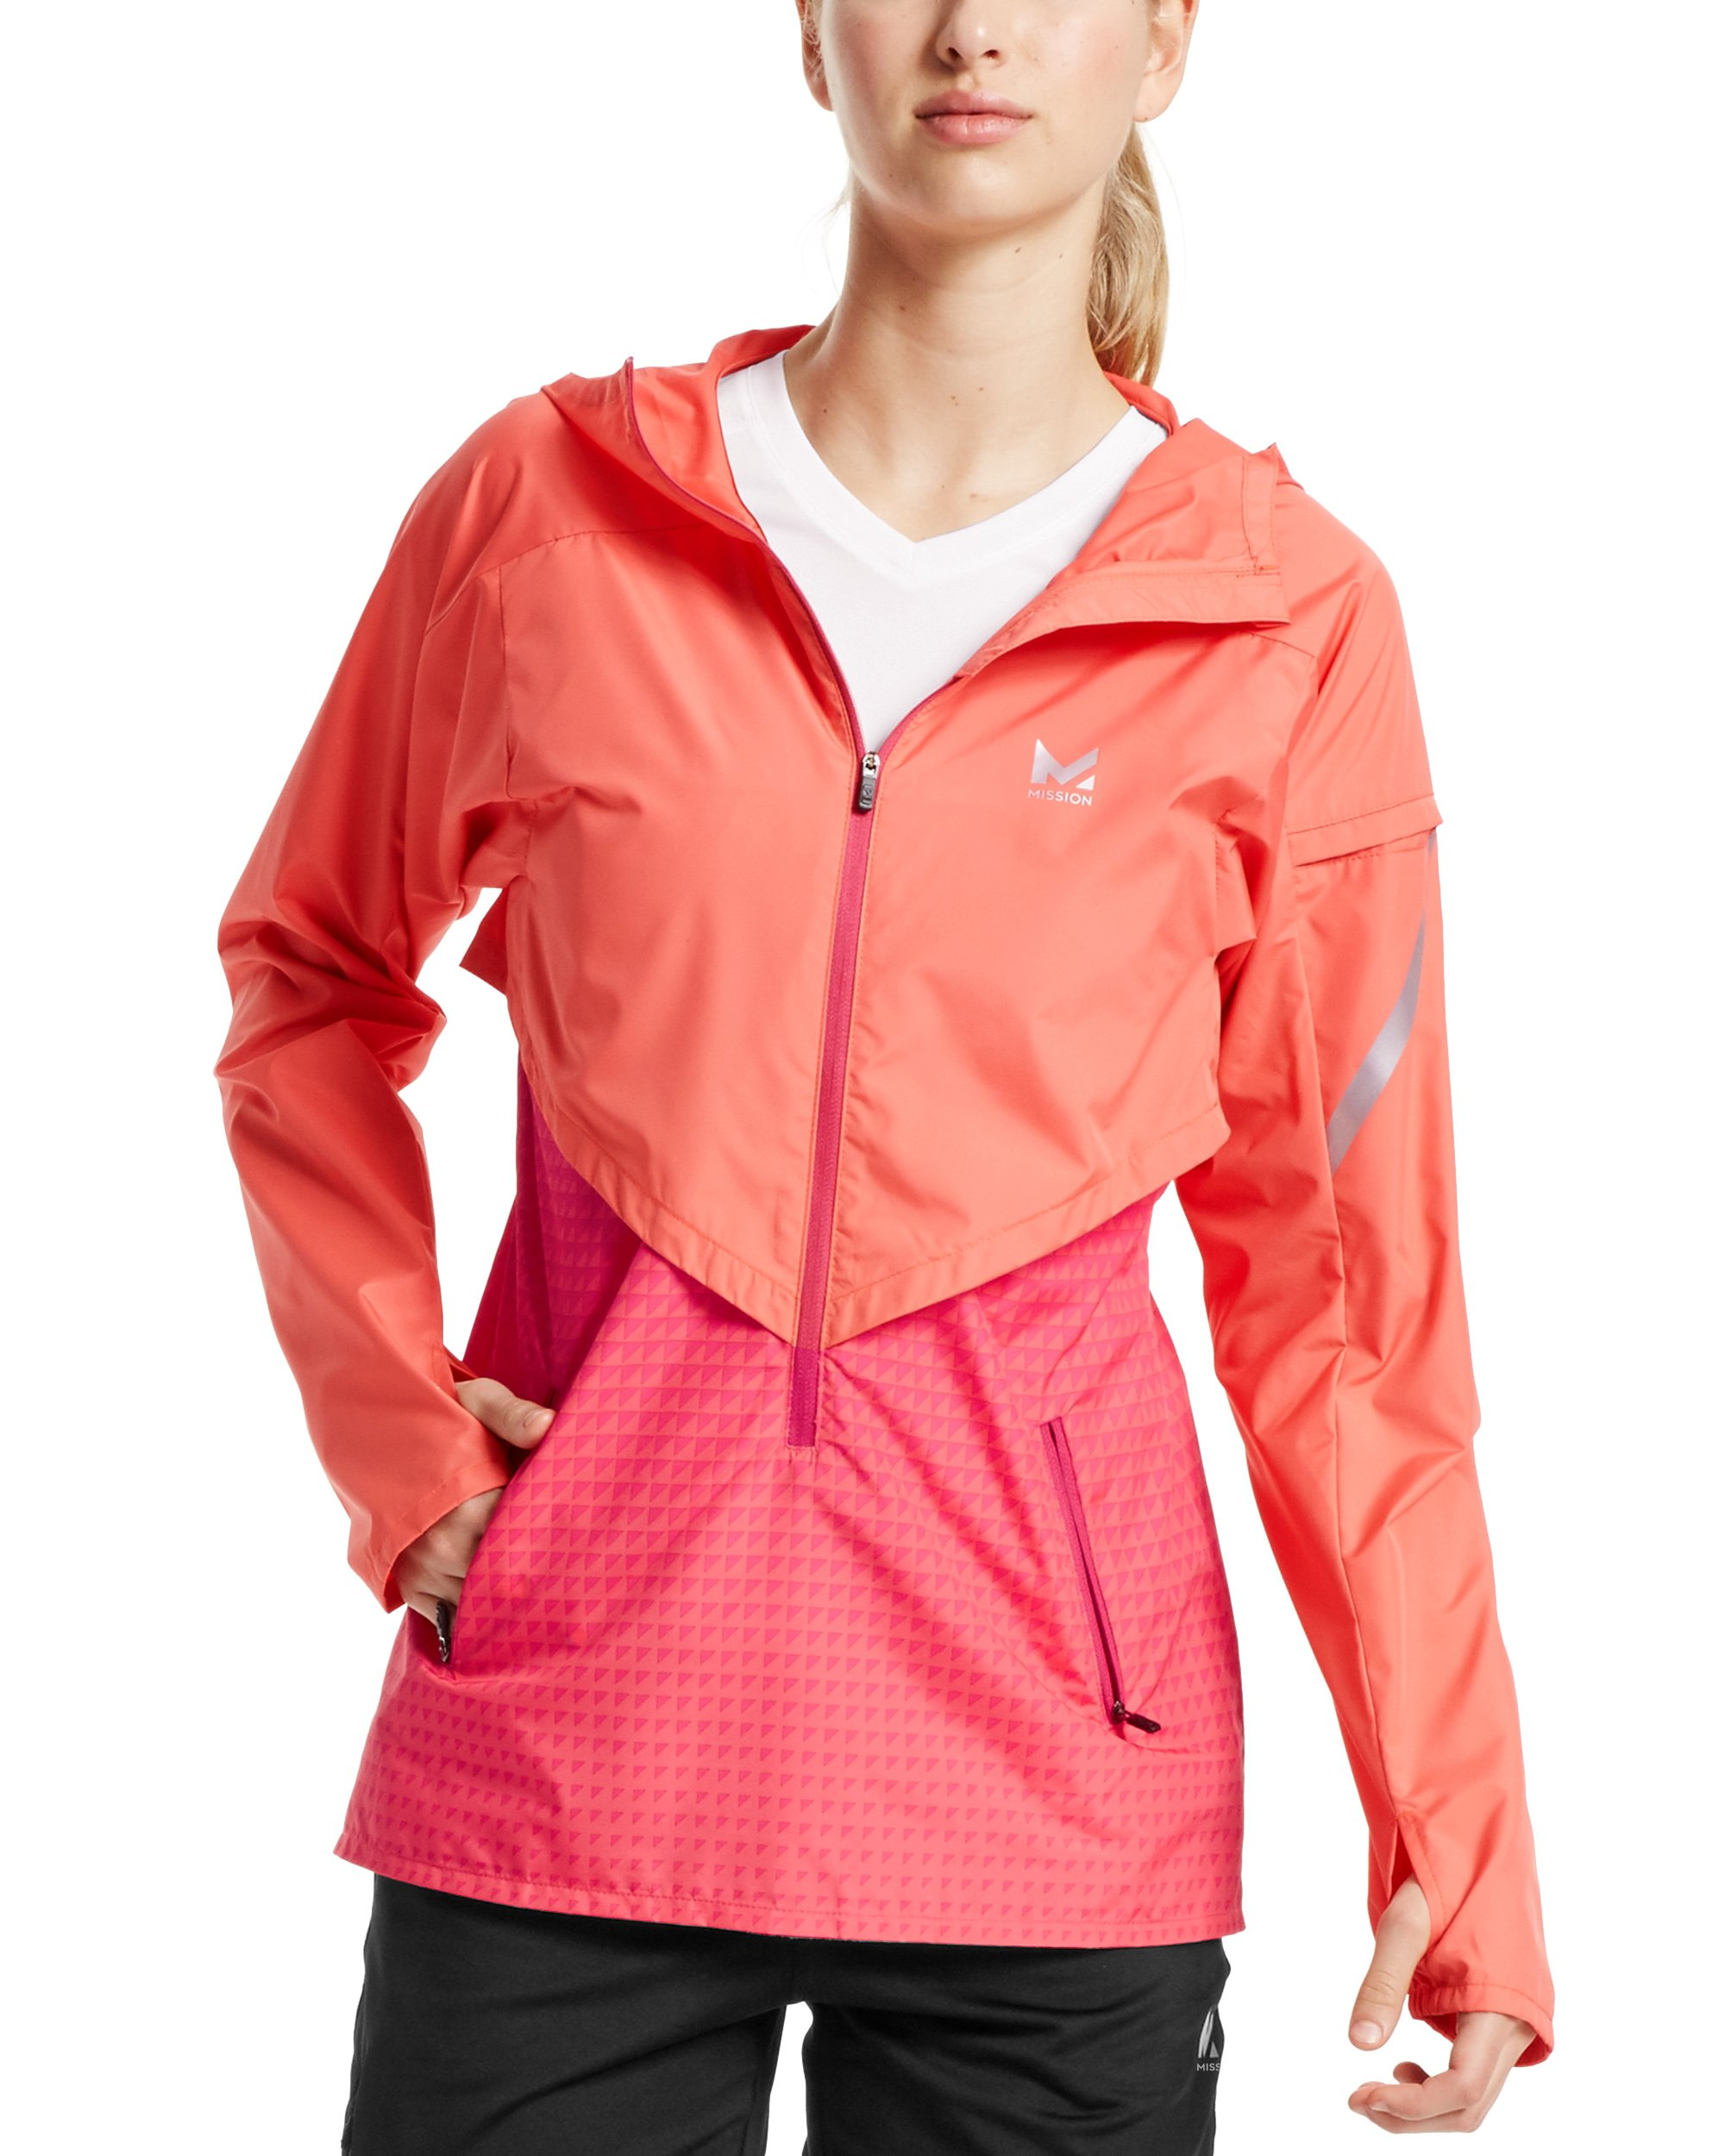 Mission Women's VaporActive Barometer Running Jacket, Emberglow/Beetroot Purple Ombre, Small by Mission